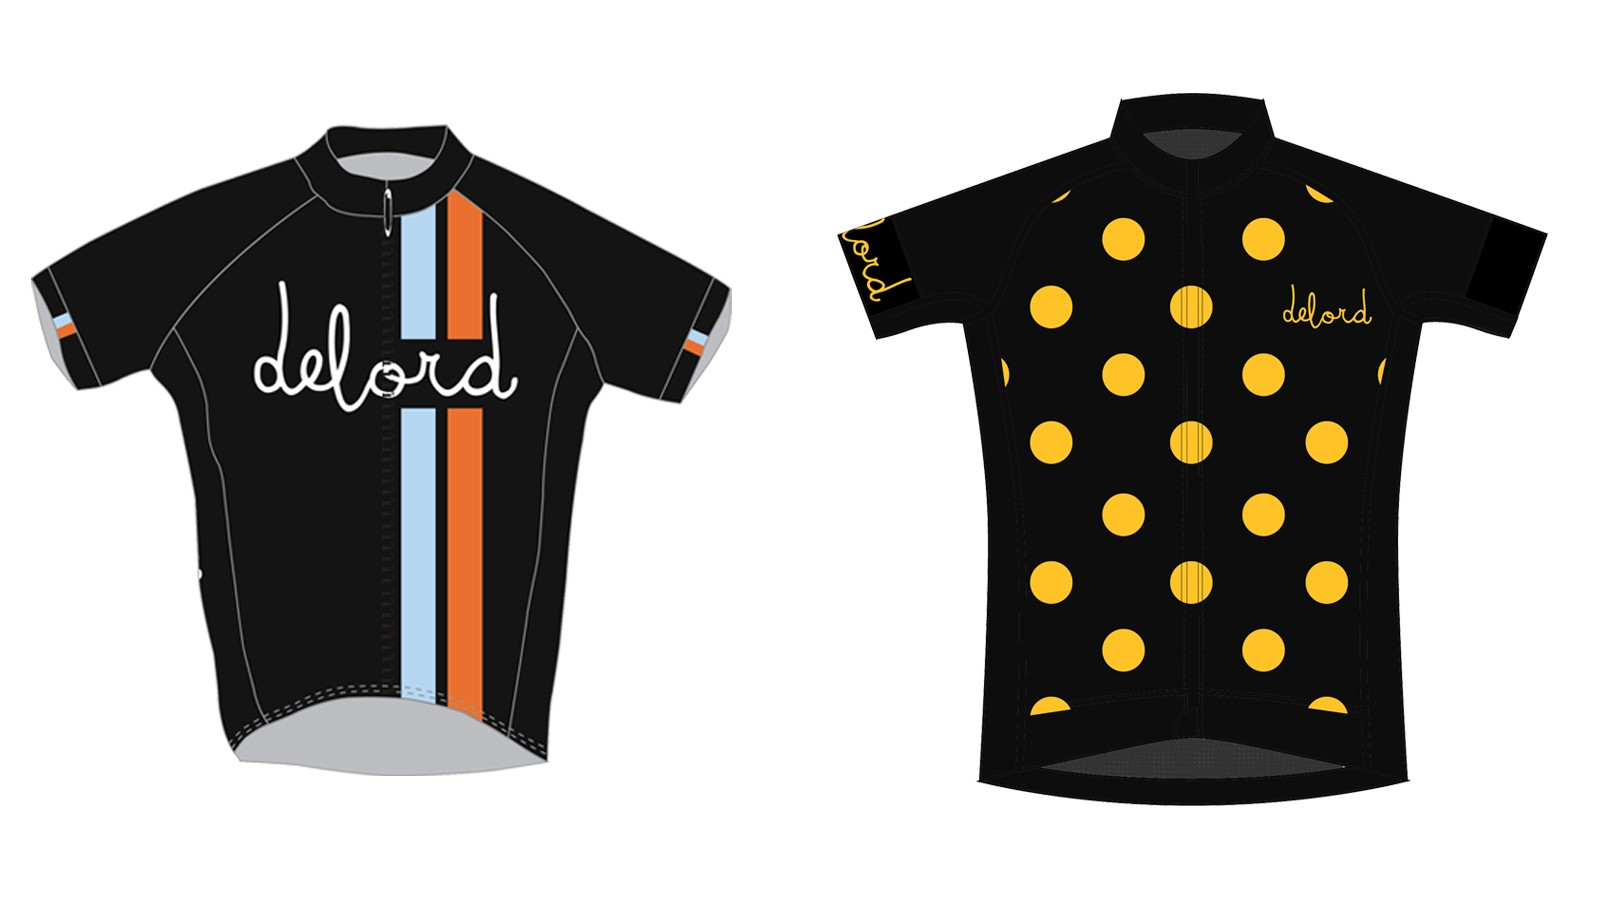 The kits from Delord are understated, but are pretty cool